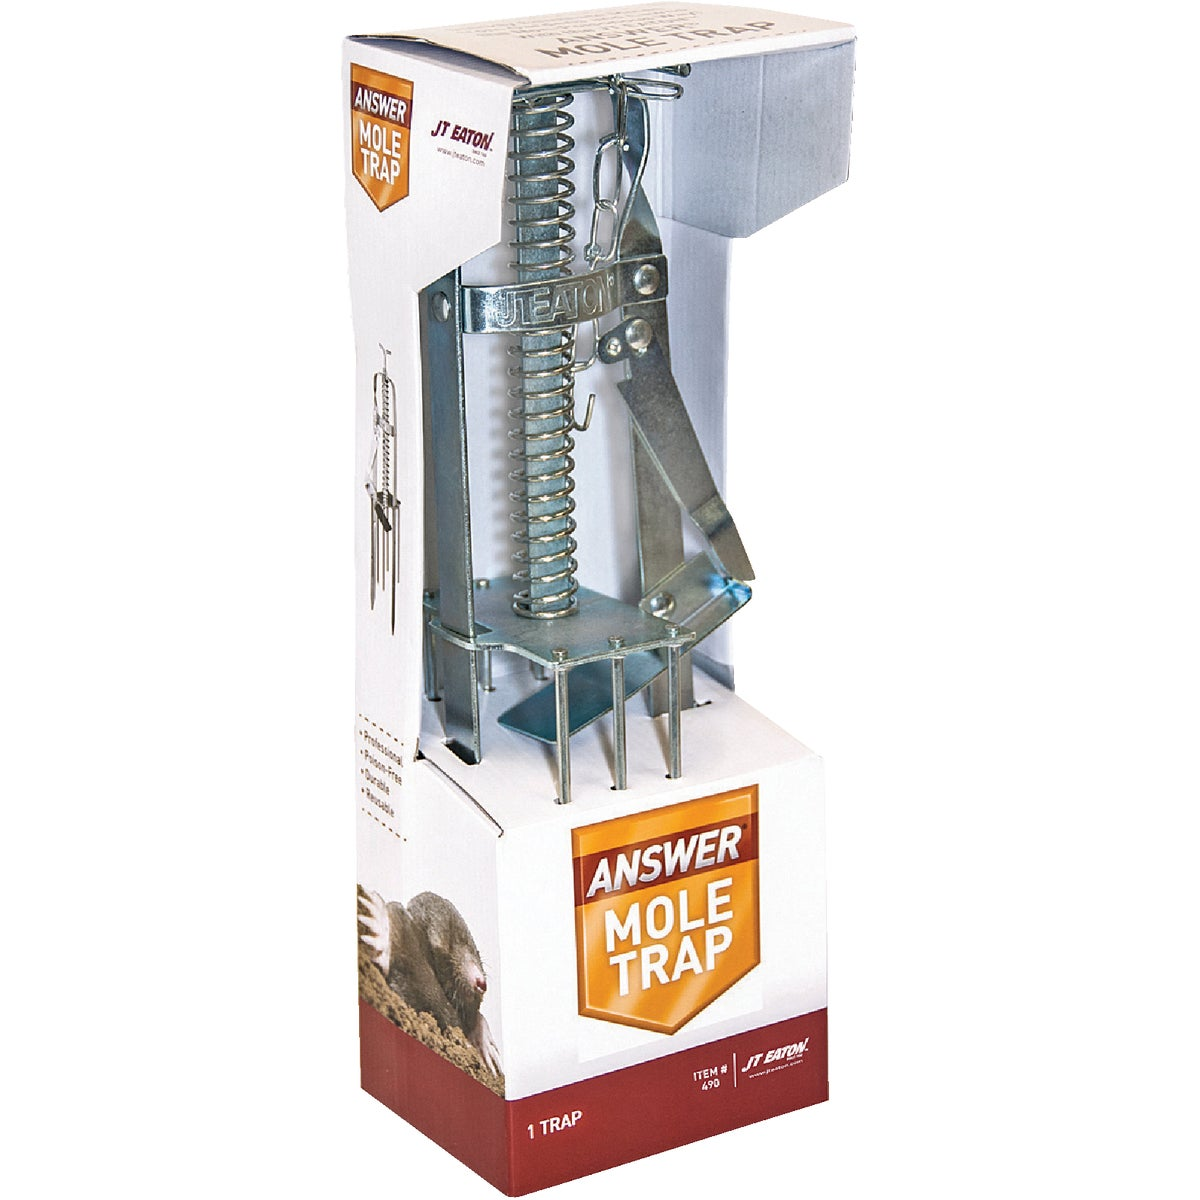 MECHANICAL MOLE TRAP - 490 by Jt Eaton & Co